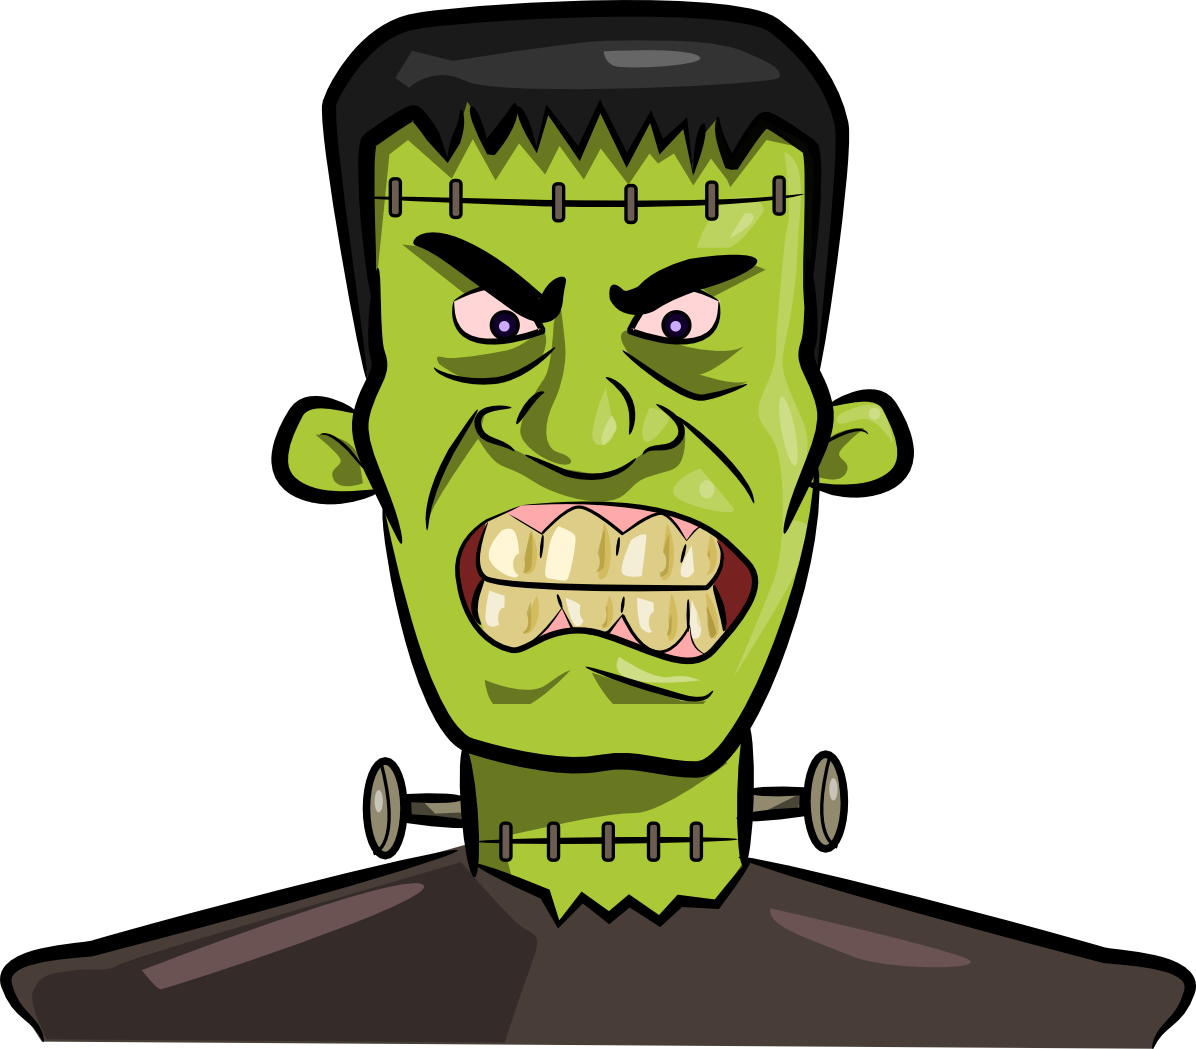 The Totally Free Clip Art Blog: Season - [Halloween] Frankenstein